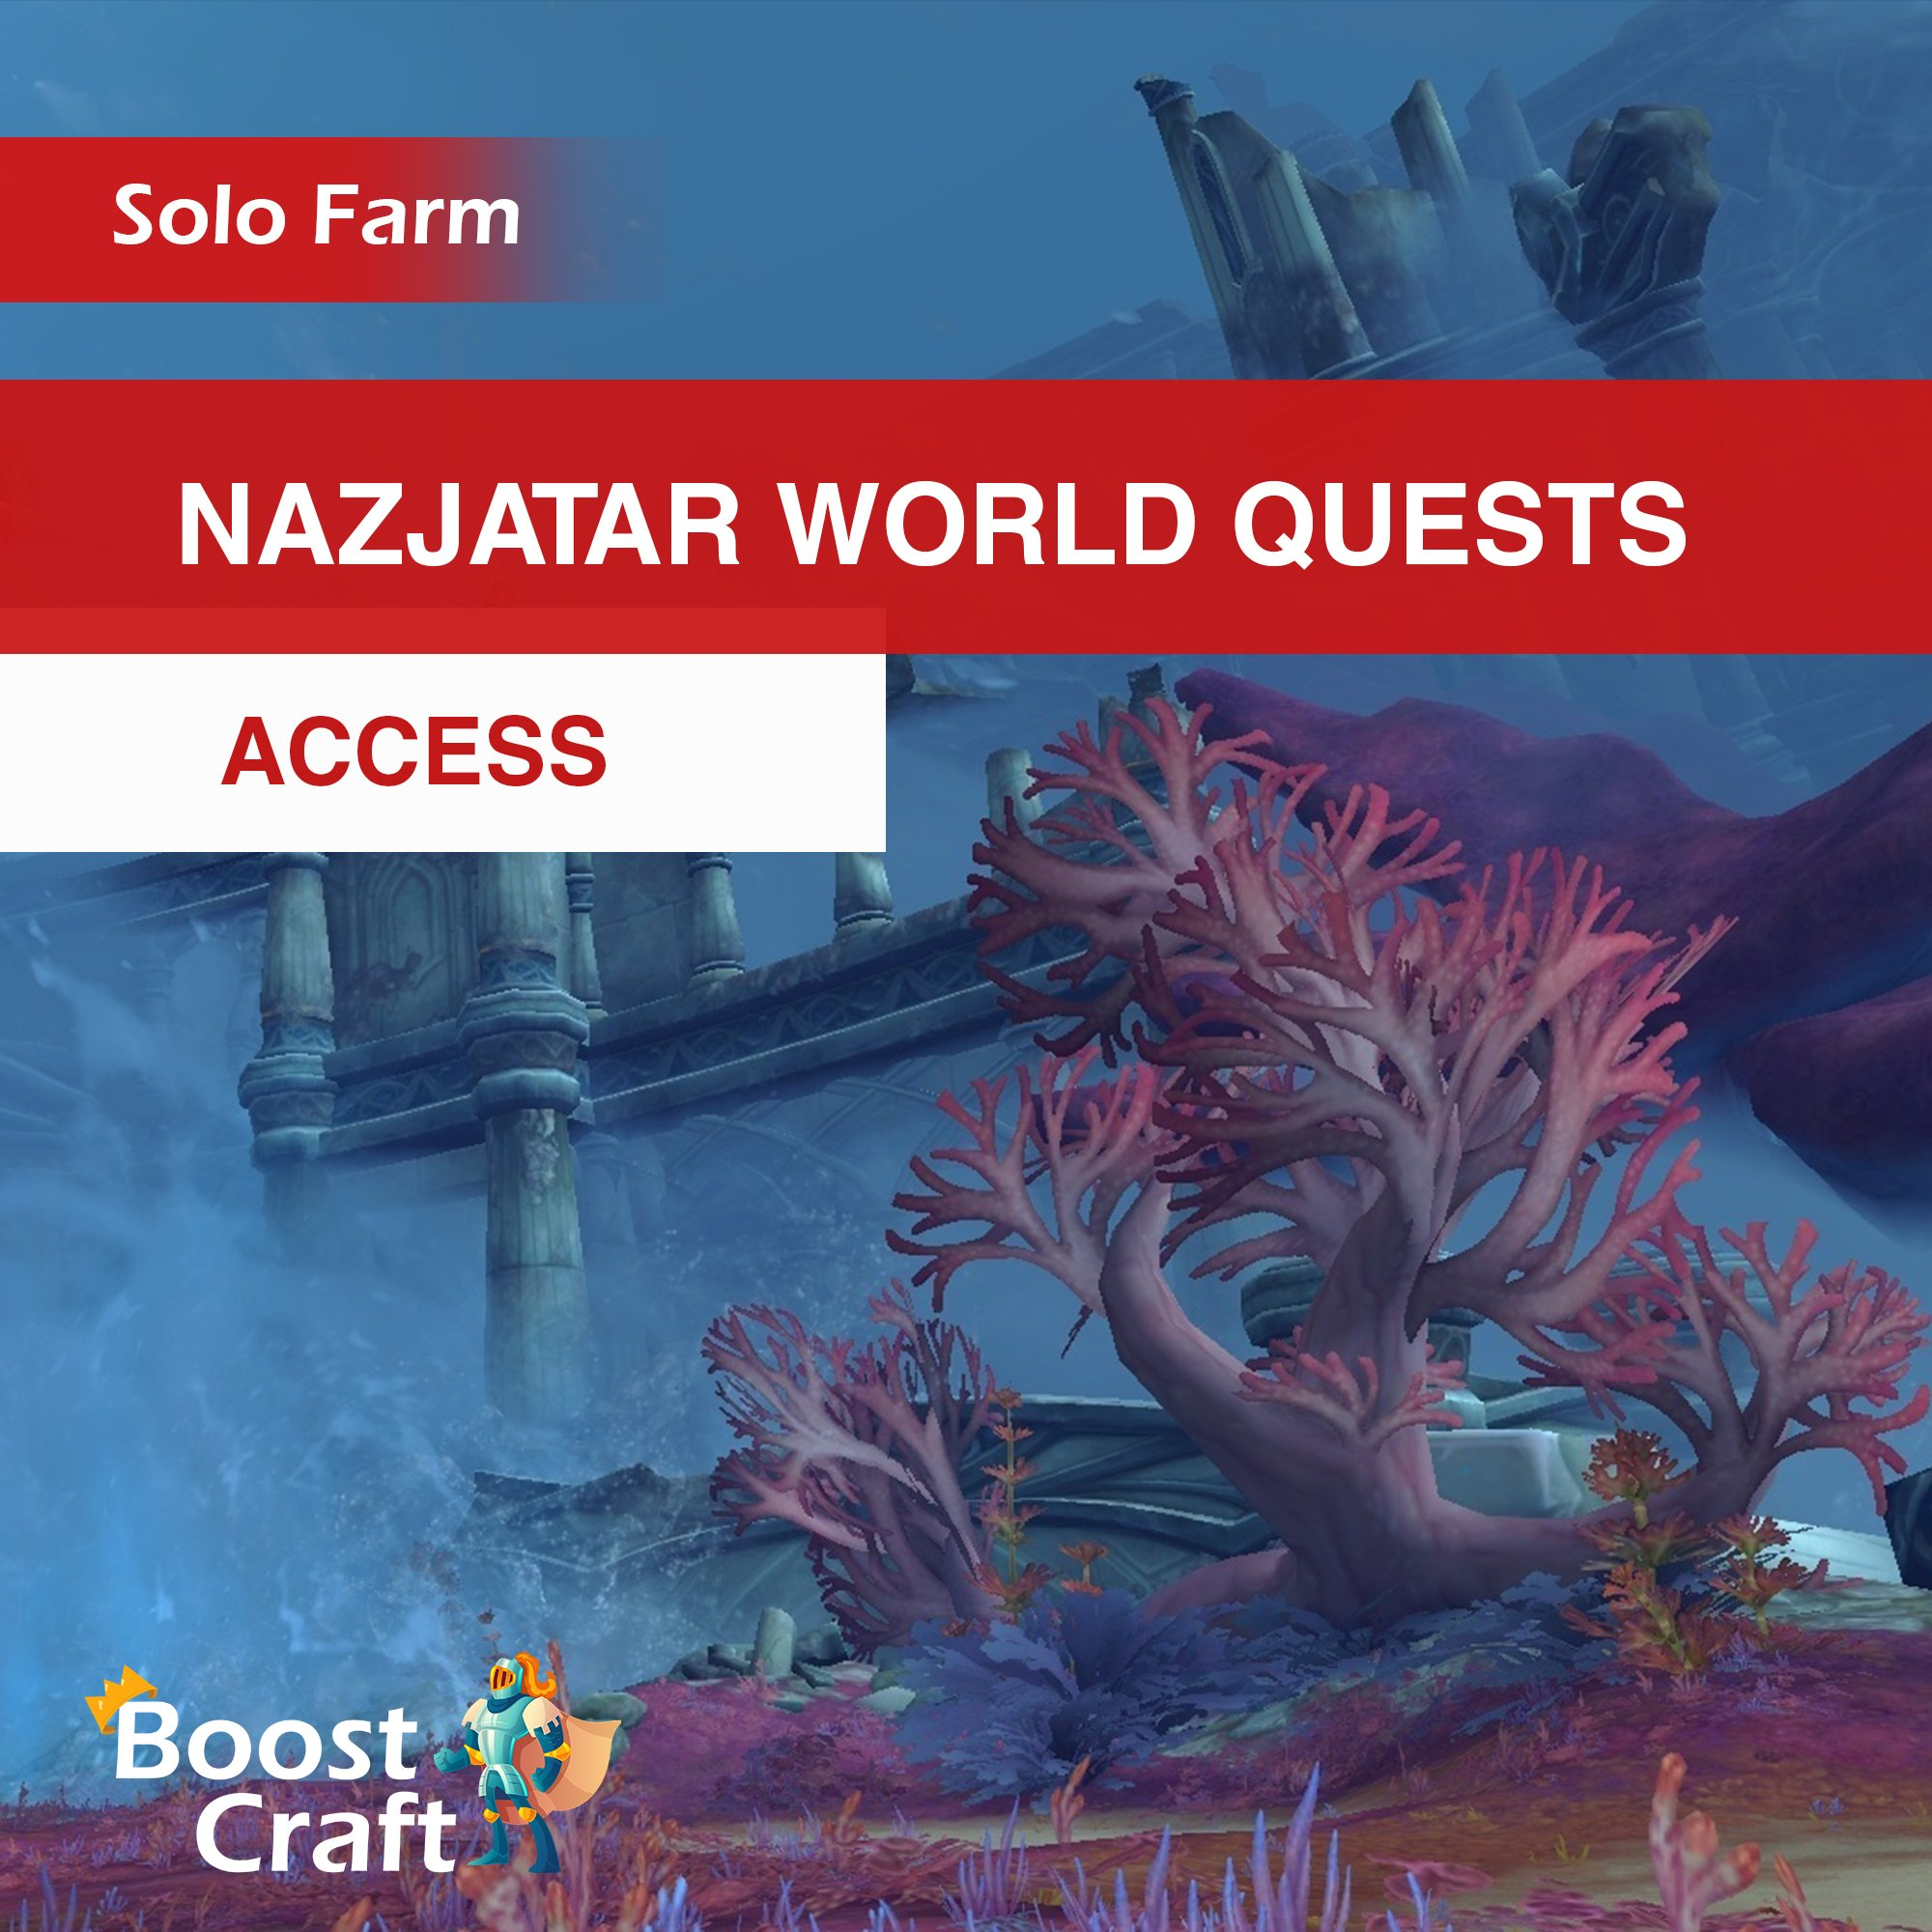 Nazjatar World Quests Access